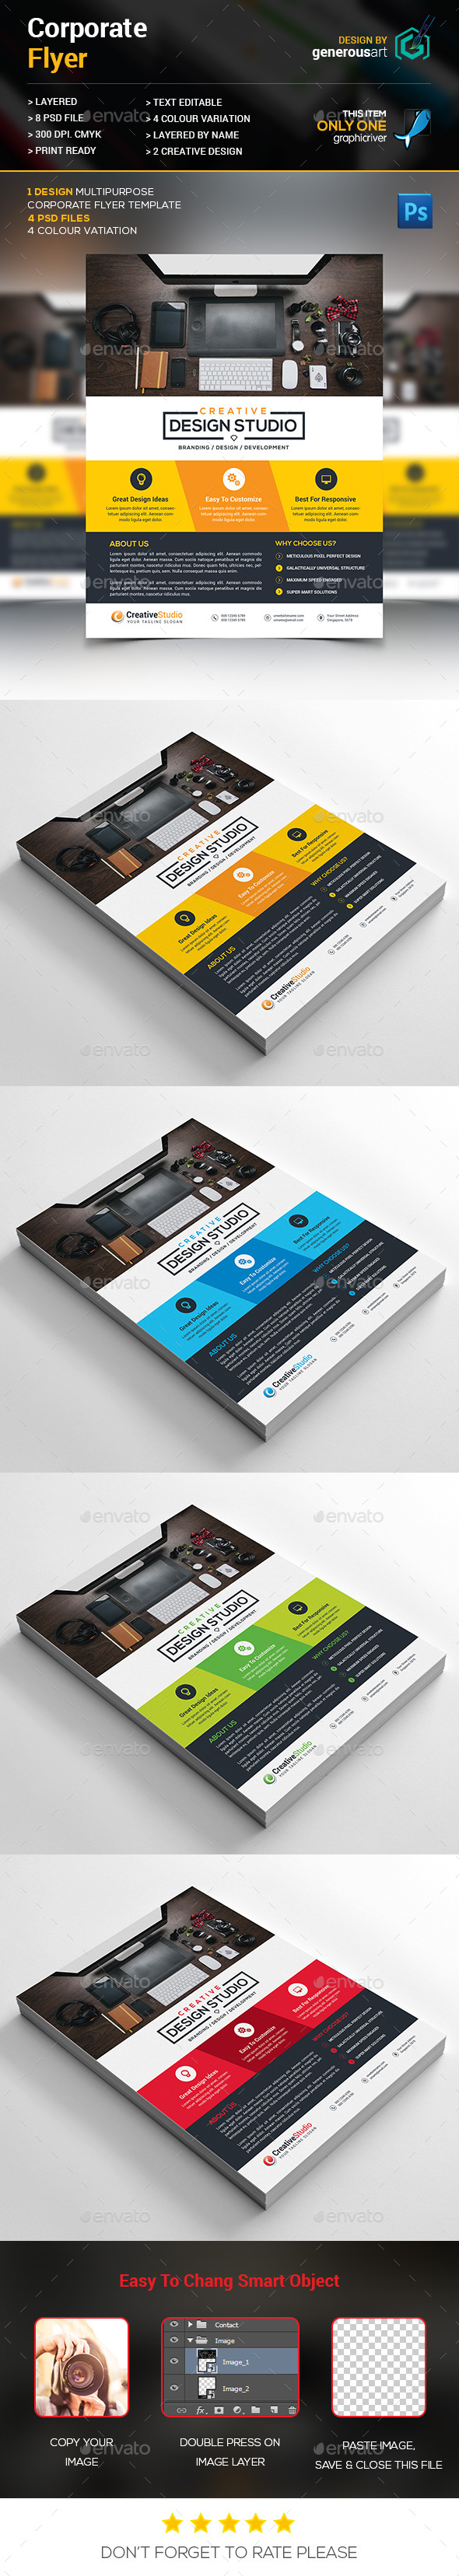 Web Agency Flyer - Corporate Flyers